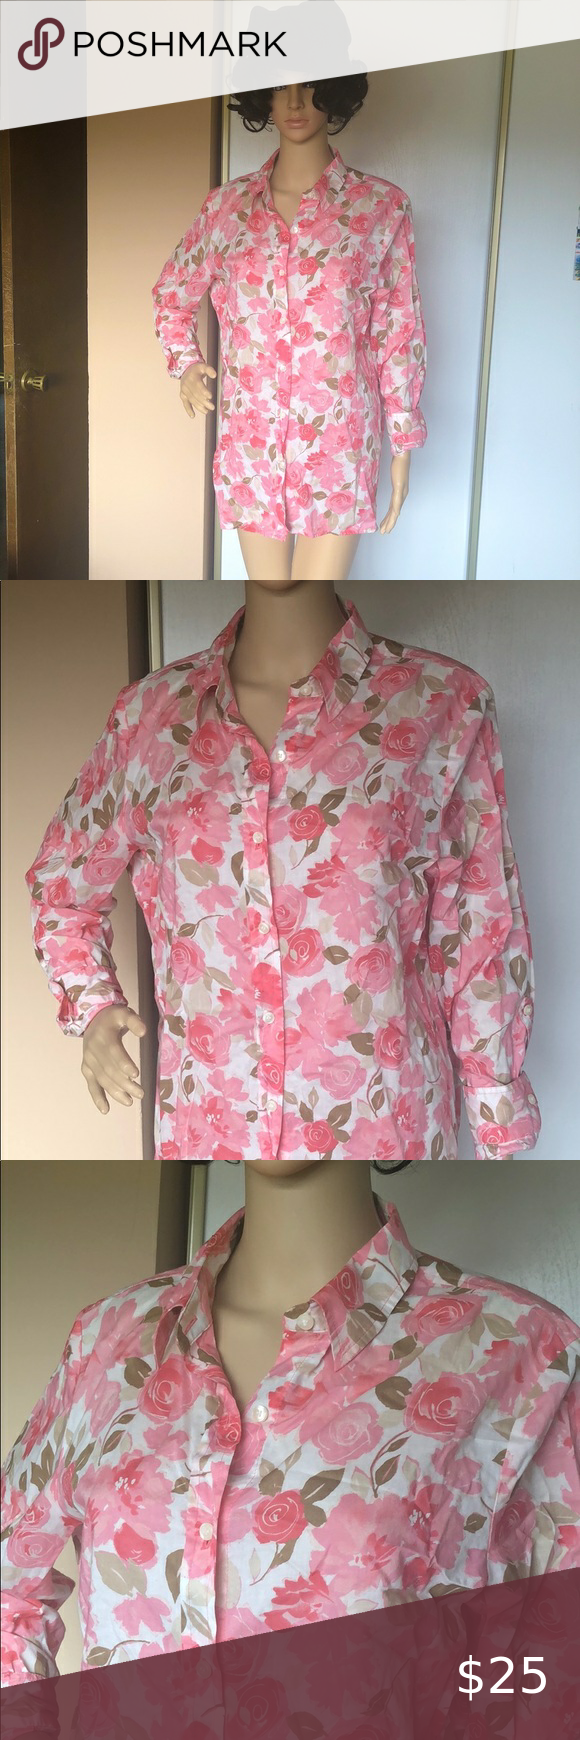 ❤️ Pink floral blouse, 🌸button down size large Pink floral button down blouse. Gorgeous pink and white floral roses button down blouse. Size large. Rose blouse. Rose top. #buttondowntop #floraltop #floral #pinkfloraltop #pinktop #pinkandwhite #pinkroses #rosetop villager Tops Button Down Shirts